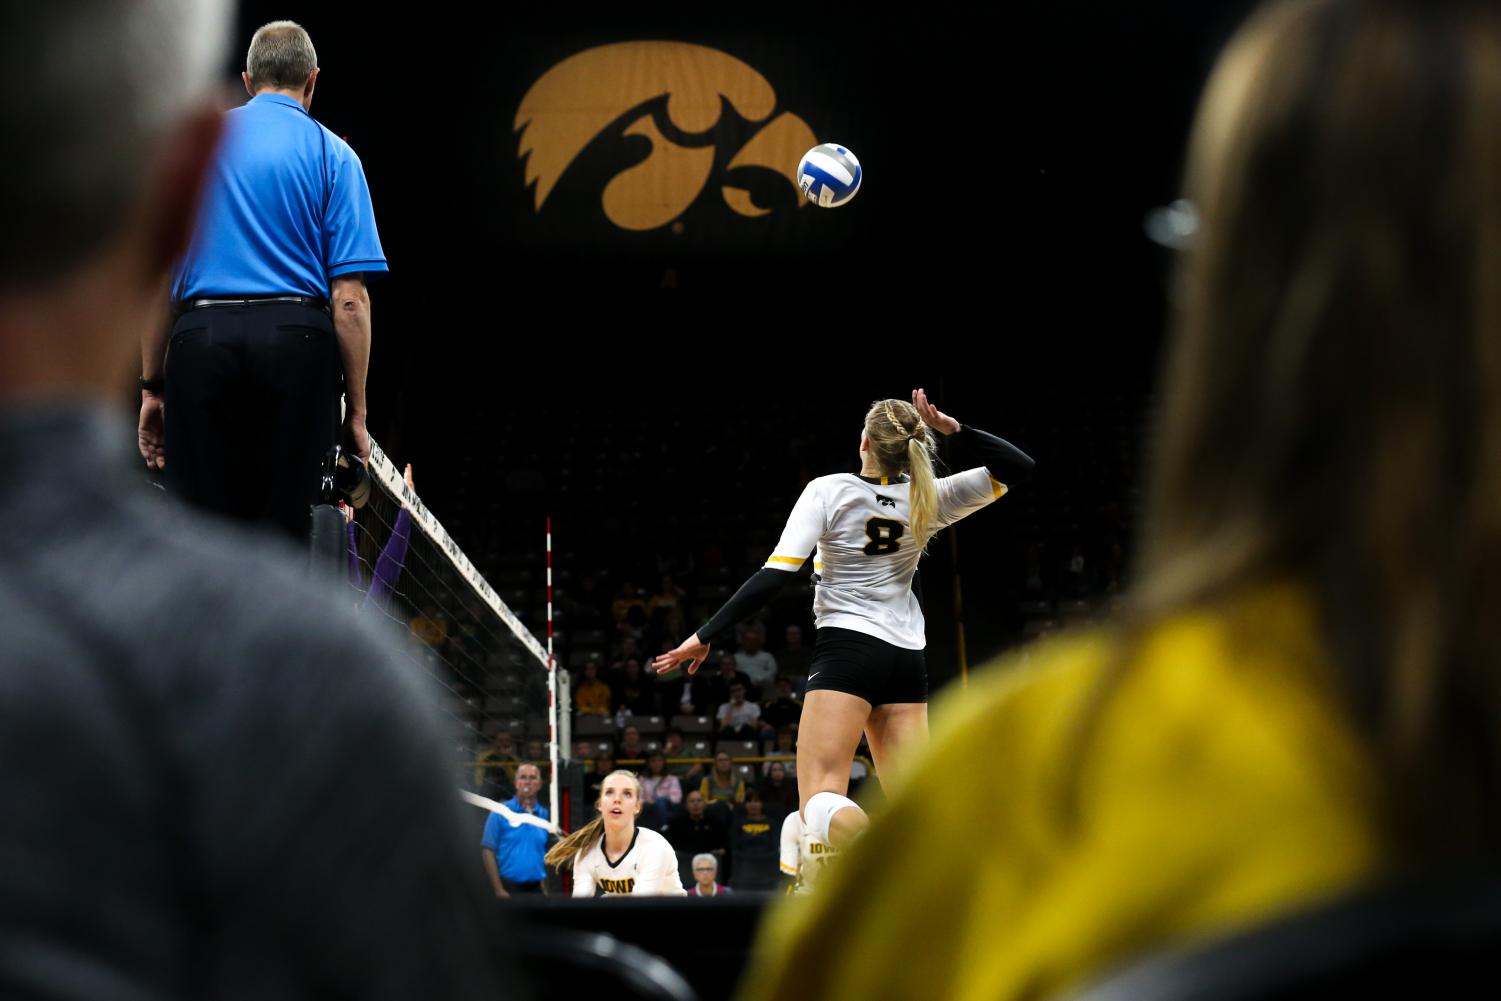 Reghan Coyle spikes the ball during the Iowa Volleyball game against Northwestern at Carver-Hawkeye Arena in Iowa City on Wednesday, Oct. 25, 2018. Northwestern defeated Iowa 3-2.